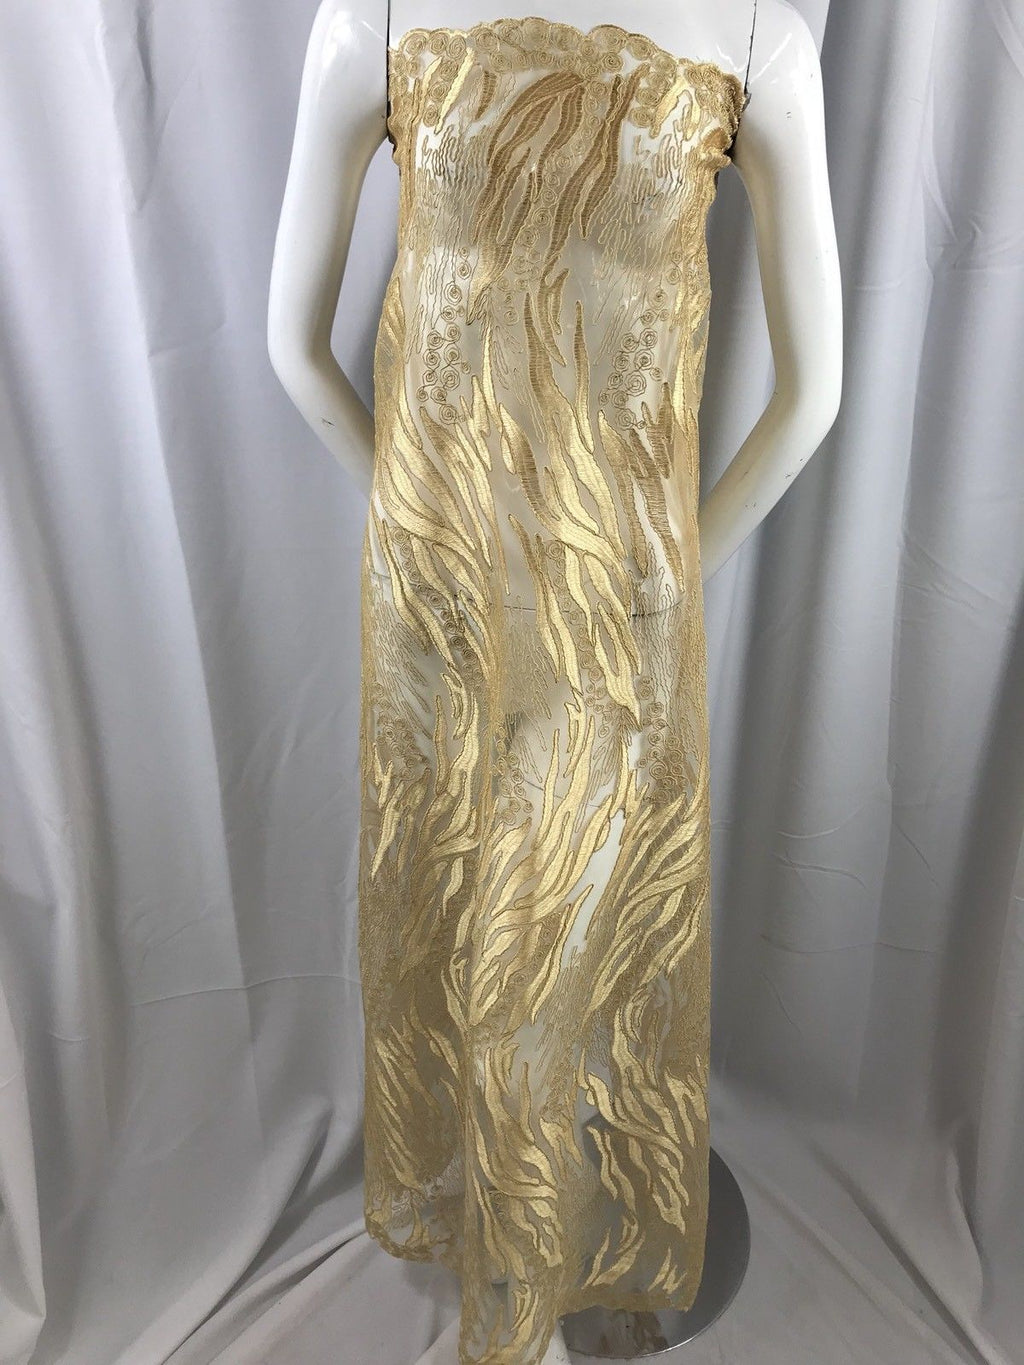 Lace fabric - Gold Flower Mesh Dress Embroidered Bridal Wedding By The Yard - KINGDOM OF FABRICS